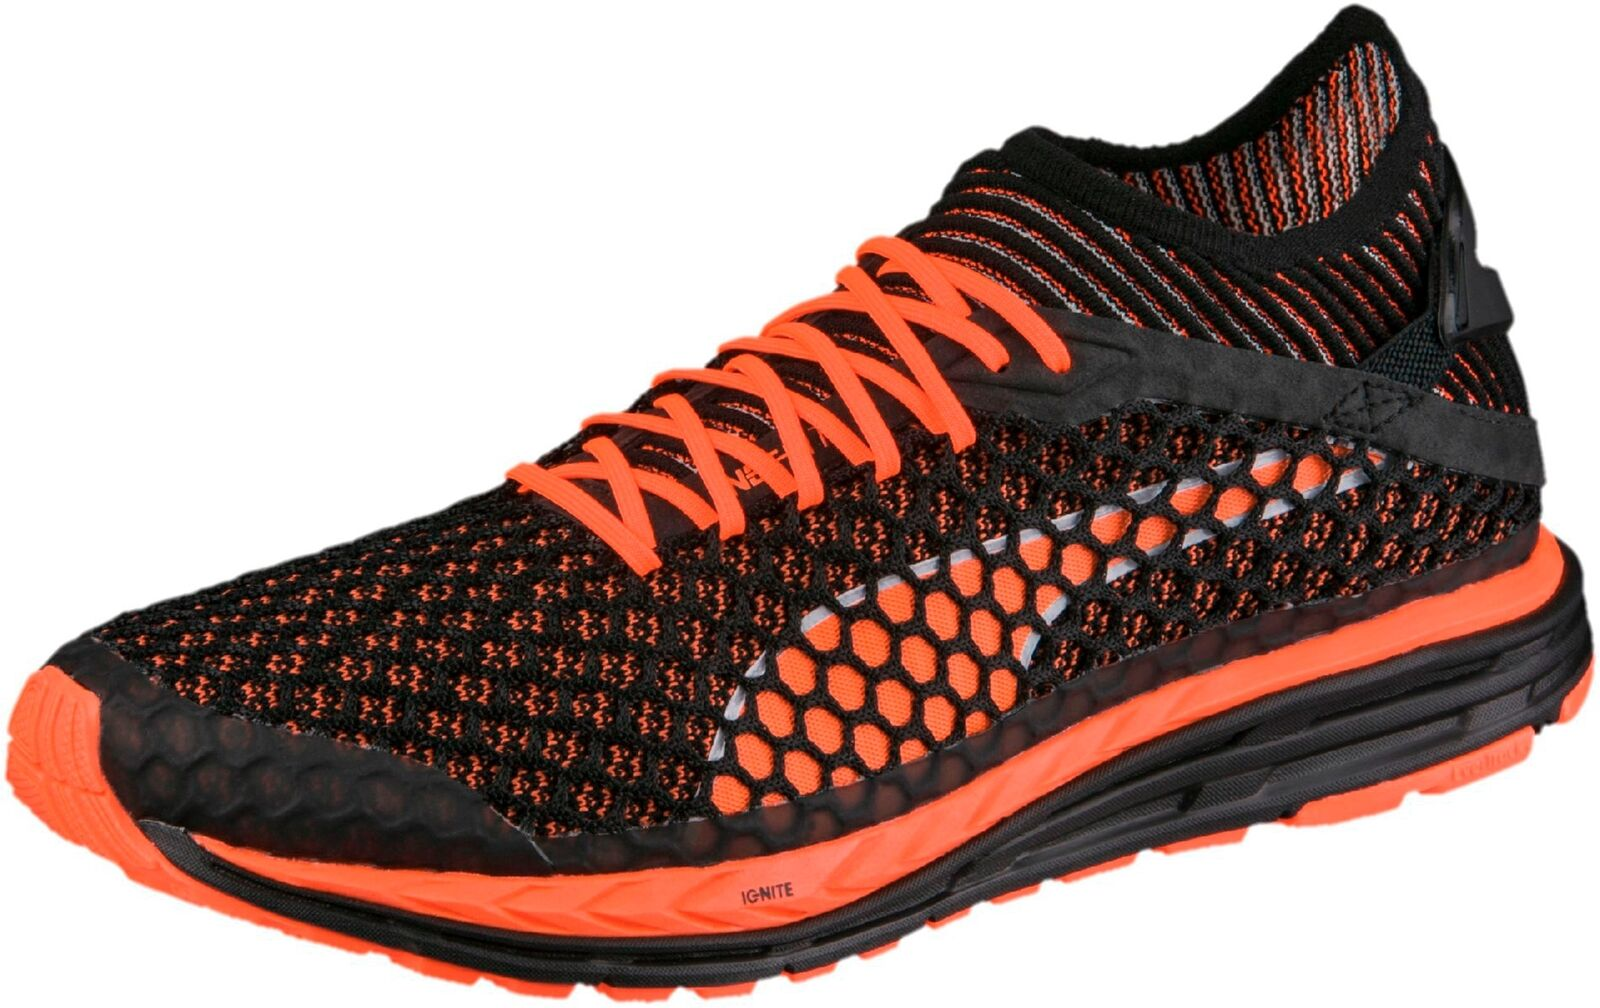 ed0cee0239d9b7 PUMA Speed Ignite Netfit Men s Running Shoes Black Uk10 for sale ...